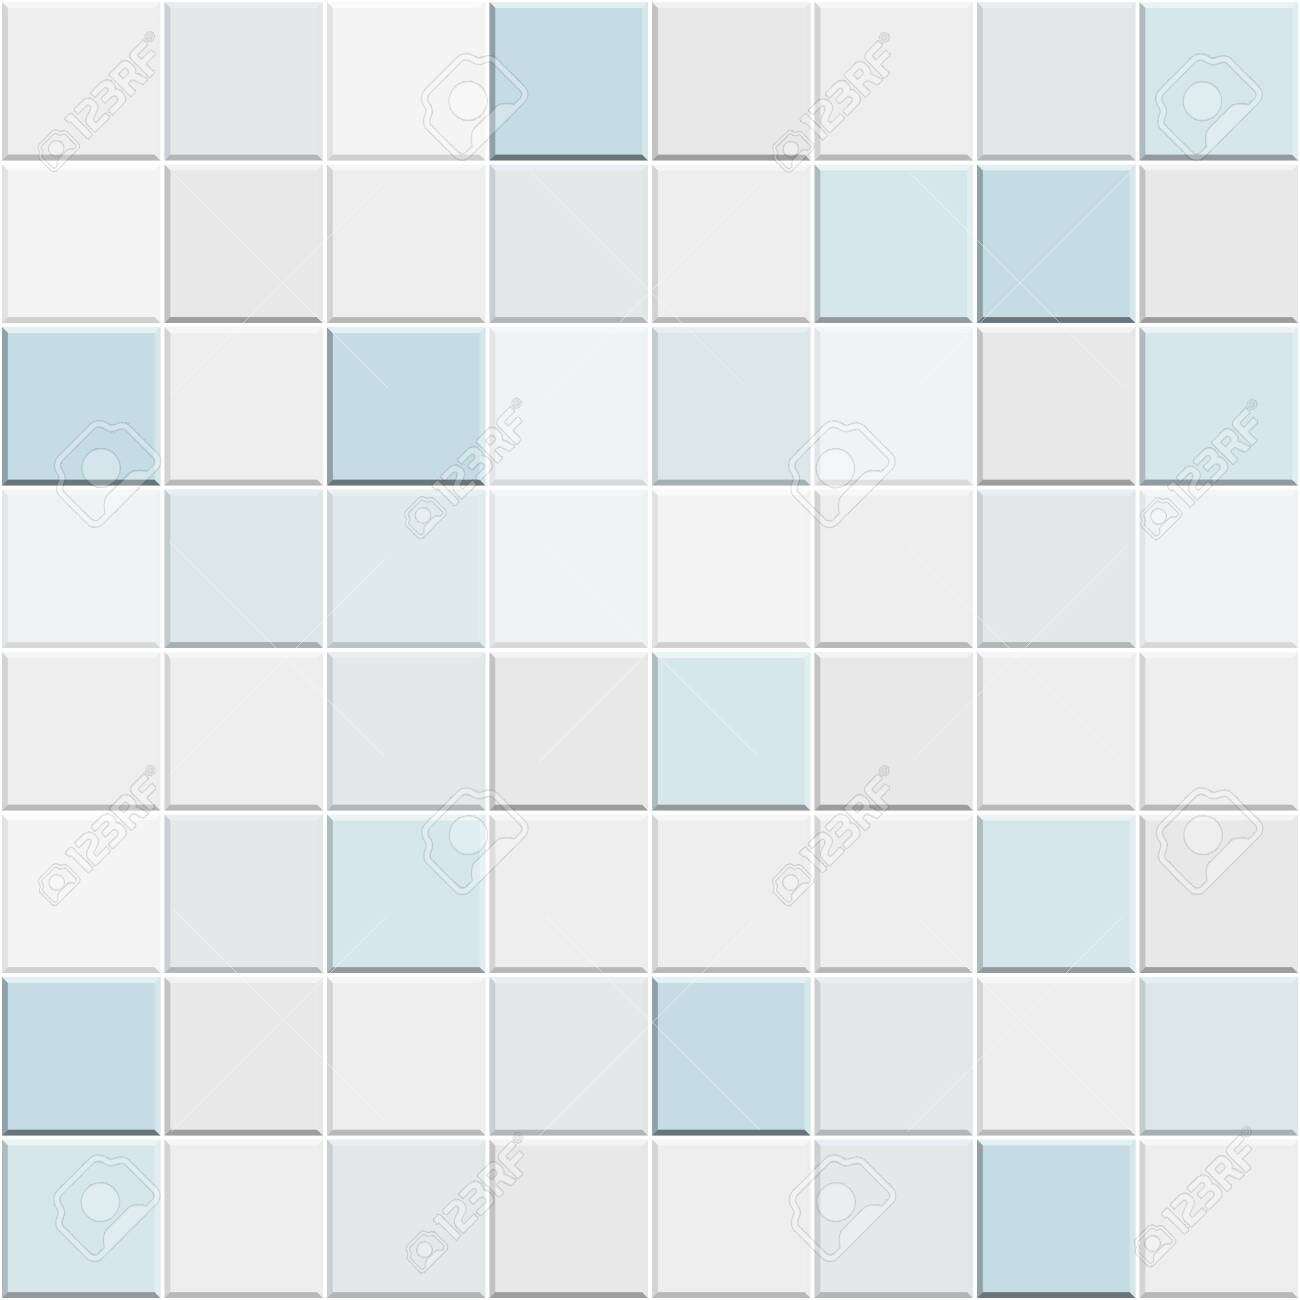 Abstract Seamless Pattern Of White Blue Ceramic Wall And Floor Royalty Free Cliparts Vectors And Stock Illustration Image 128424207